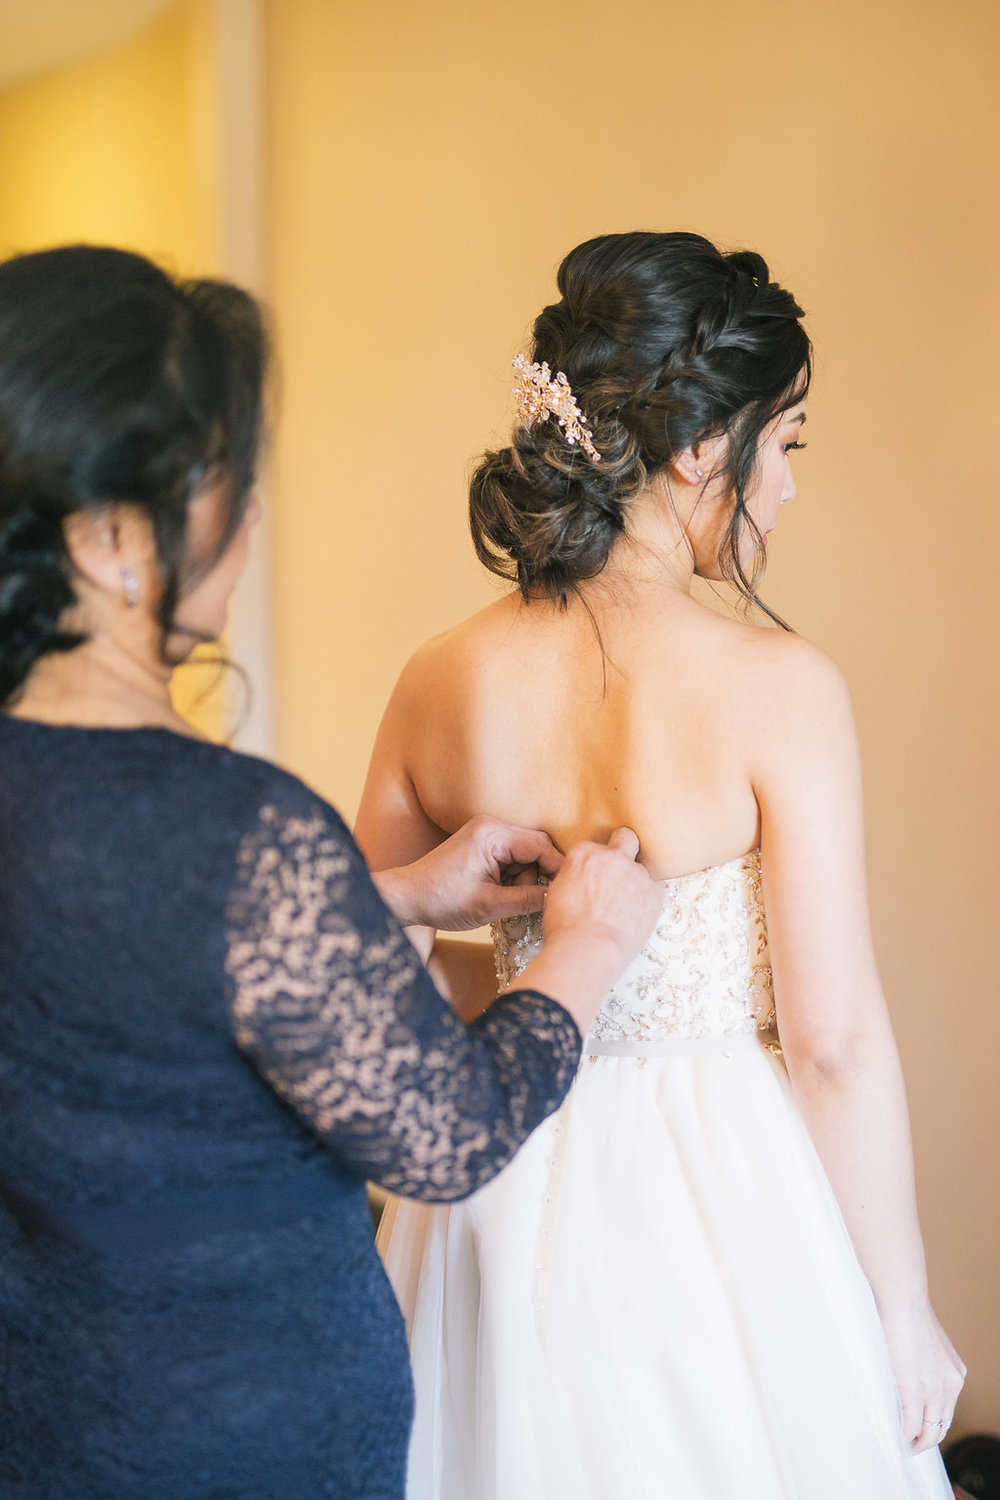 Avegail was one of the most stunning brides, exuding grace and elegance.